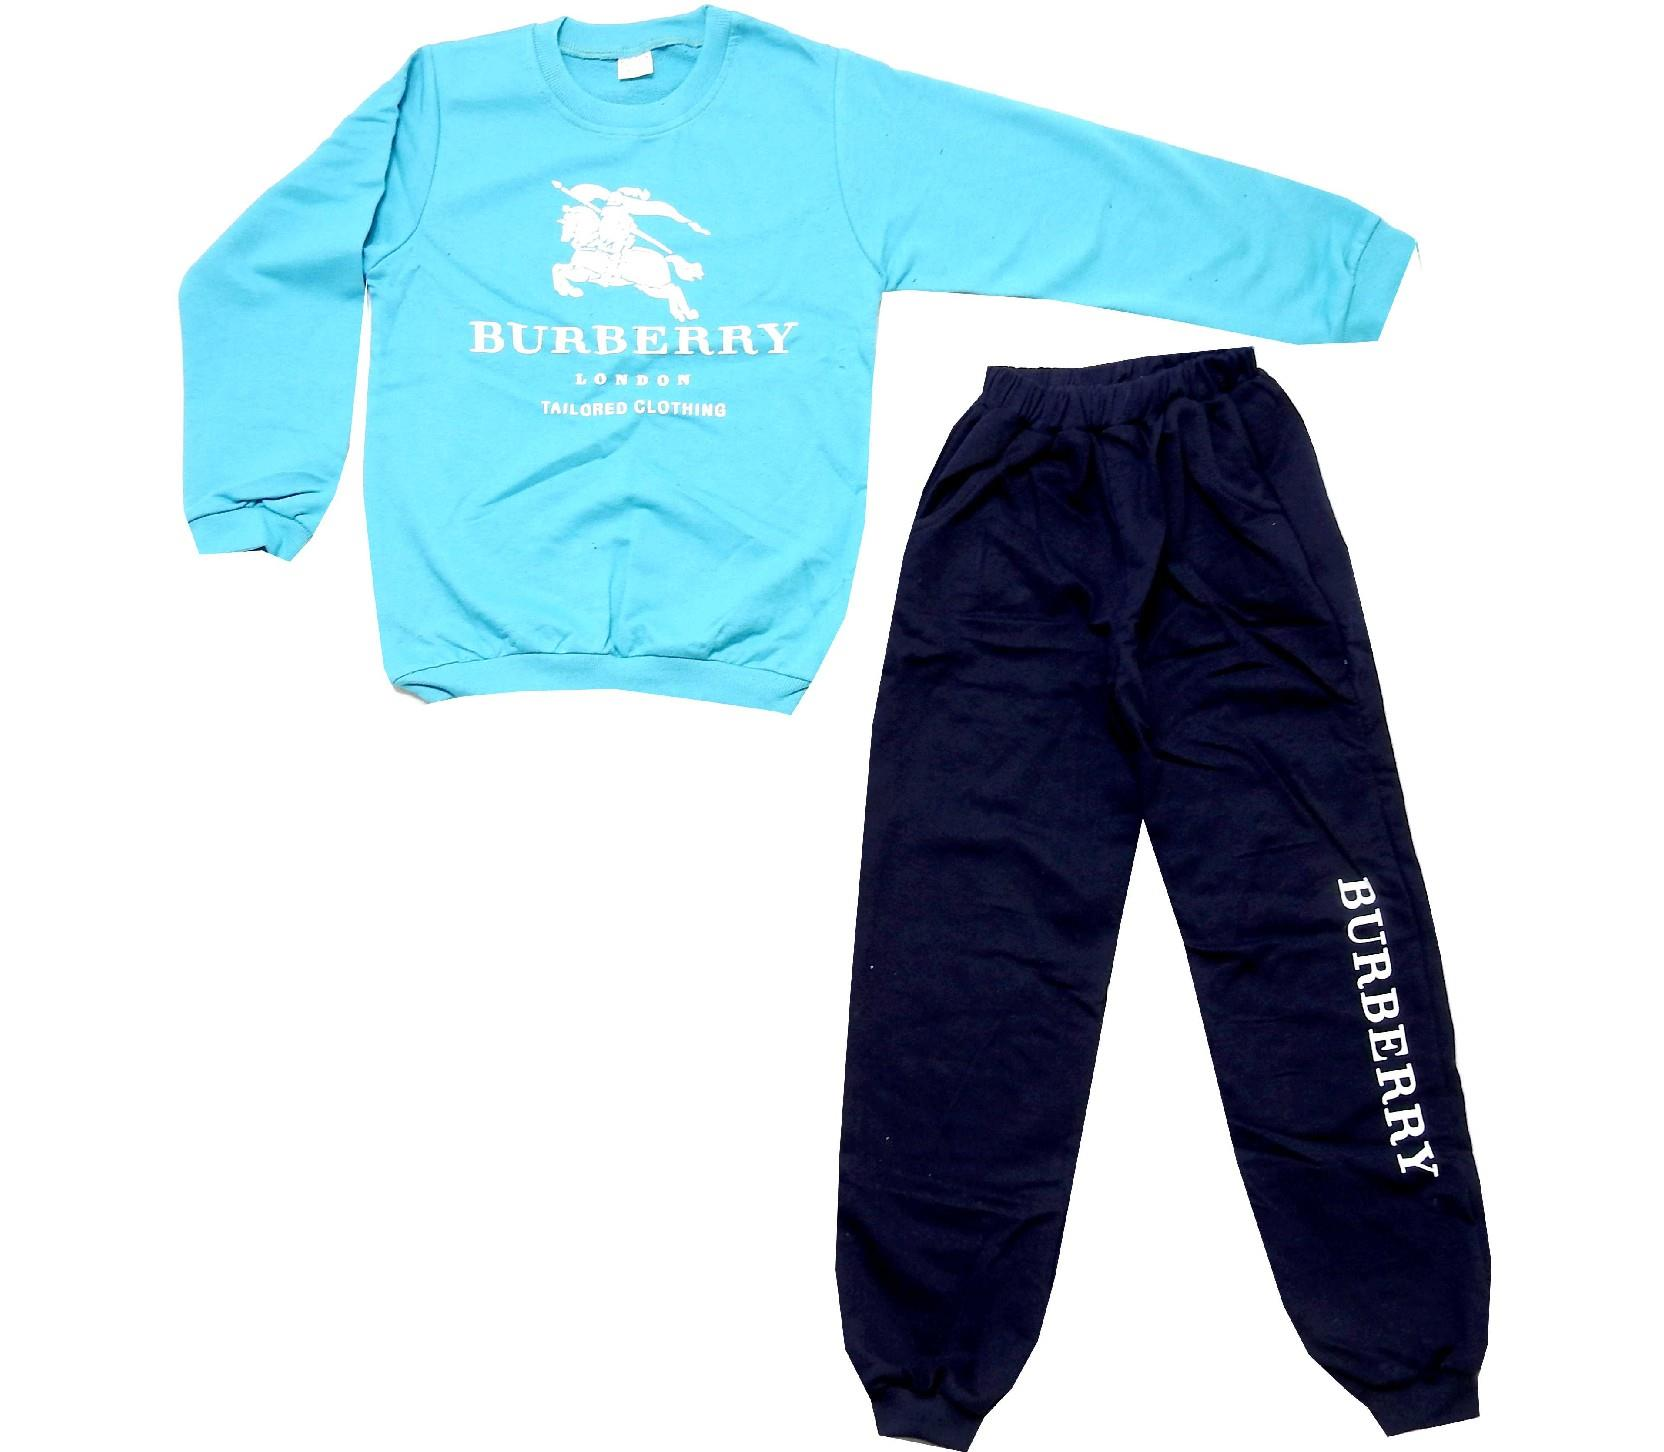 Wholesale burberry print sweatshirt and trouser tracksuit double set for boy (4-6-8-10 age)